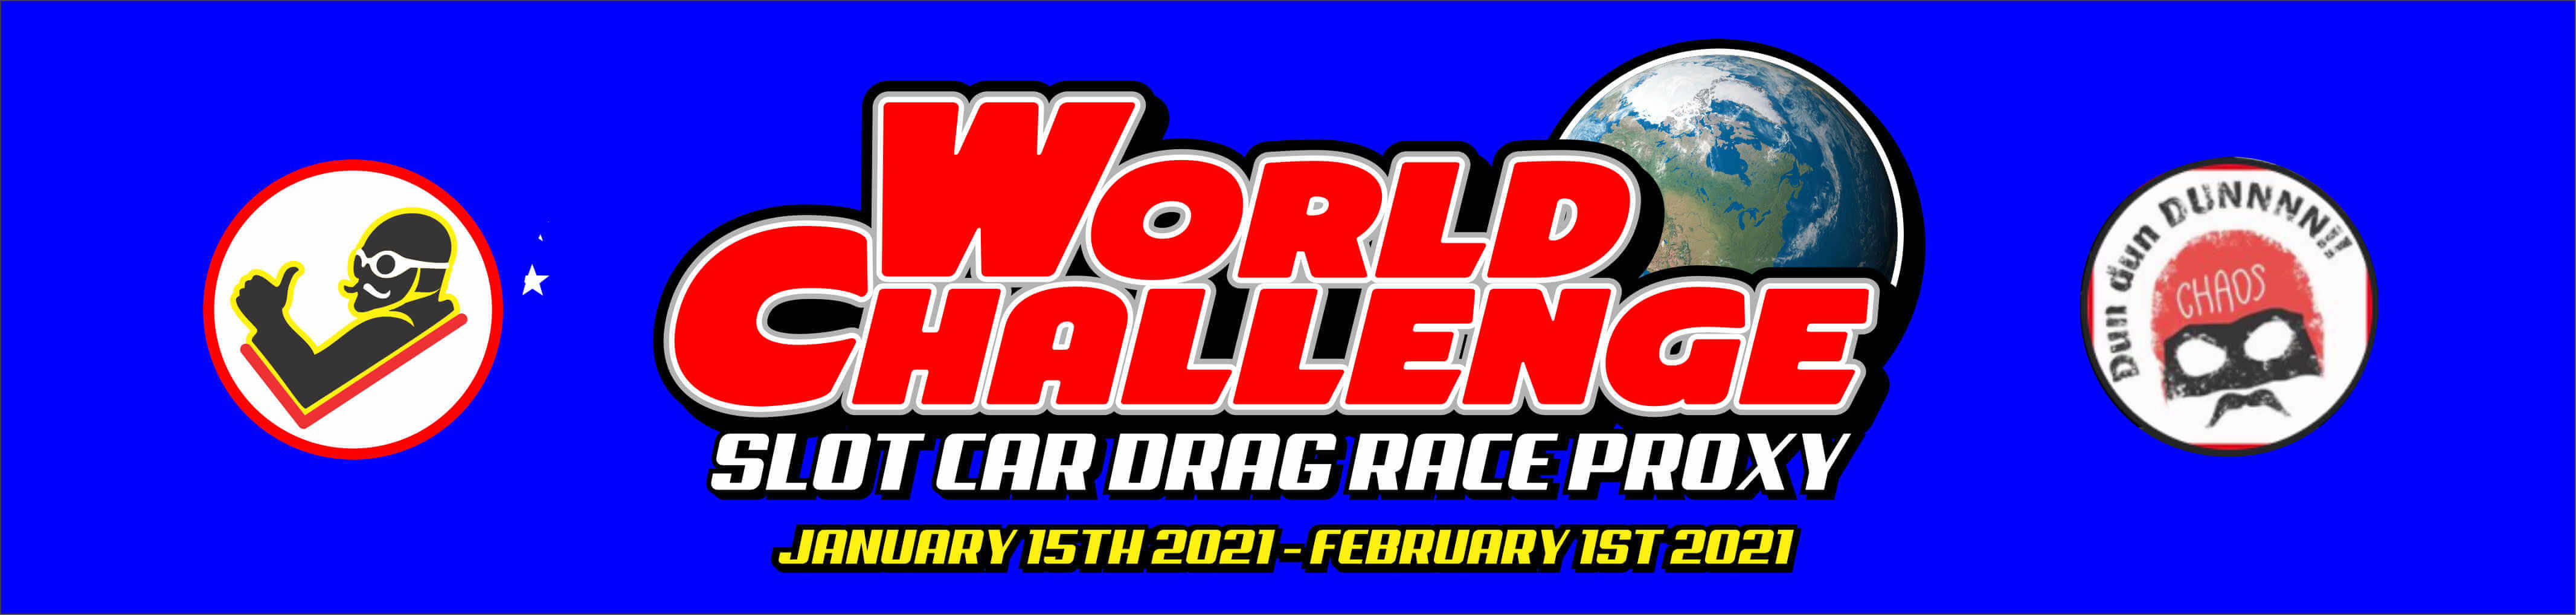 Slot Car Drag Race Proxy World Challenge